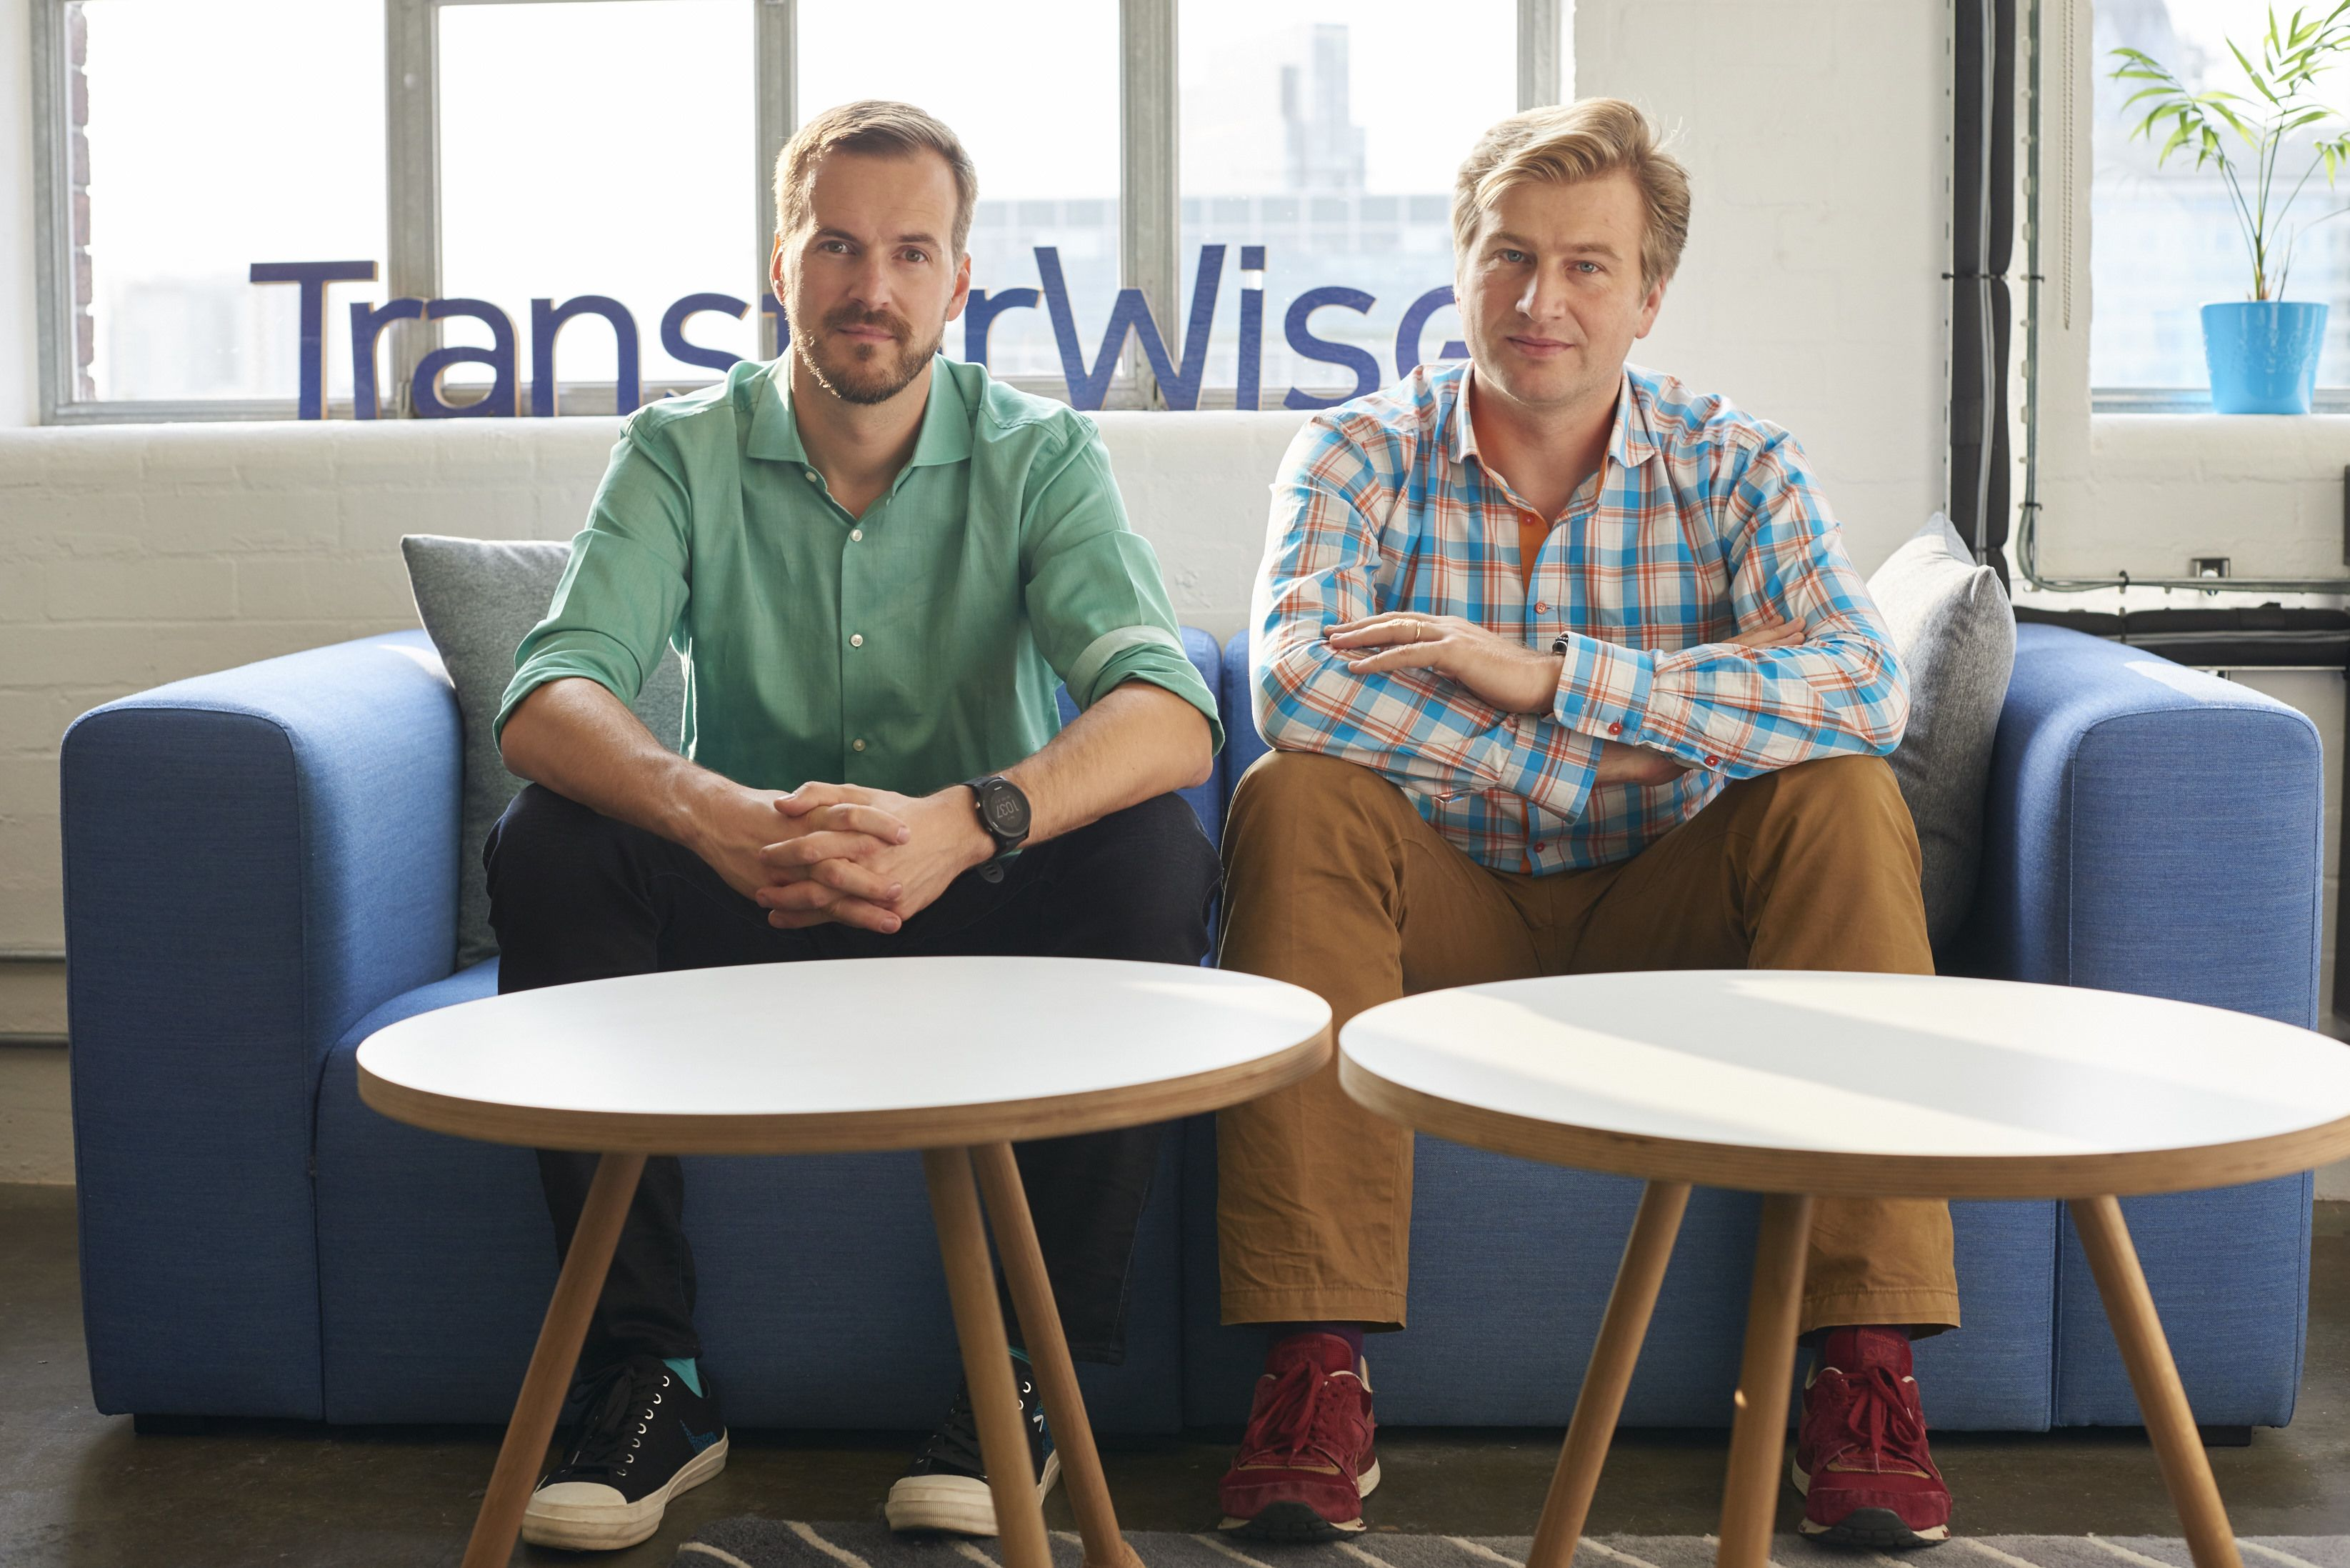 TransferWise valued at $3.5 billion after $292 million secondary sale